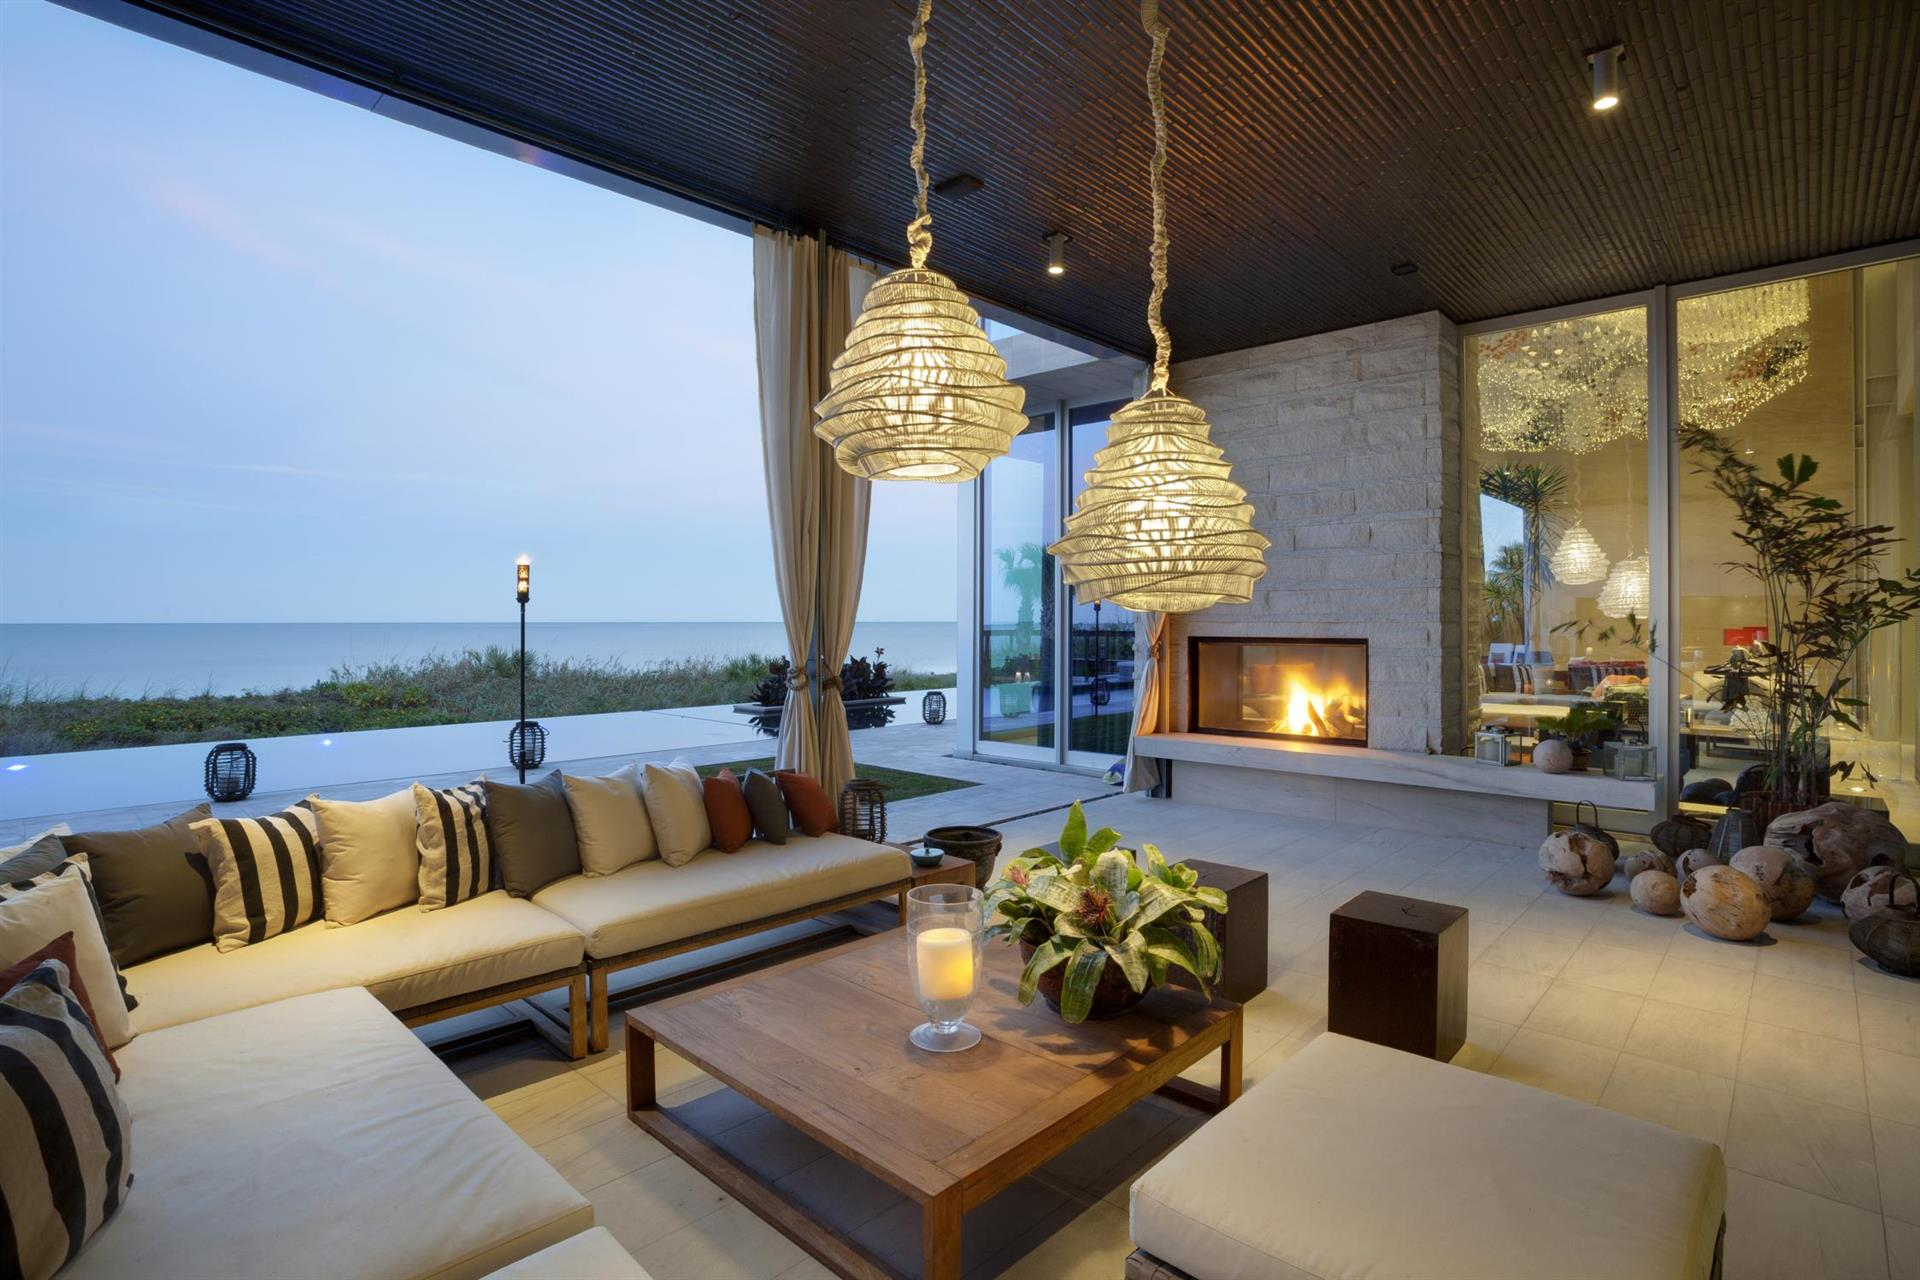 Oceanfront Modern Marvel: a luxury home for sale in Vero Beach ... on florida lighting designs, florida beach art, florida bedroom designs, florida dining room designs, key west home designs, florida beach painting, seaside home designs, country home designs, florida beach amenities, florida beach house, florida apartment designs, florida beach architecture, florida pool designs, florida beach weddings, florida beach real estate, florida kitchens designs, florida beach kitchen, melbourne home designs, plantation home designs, florida beach bathroom,